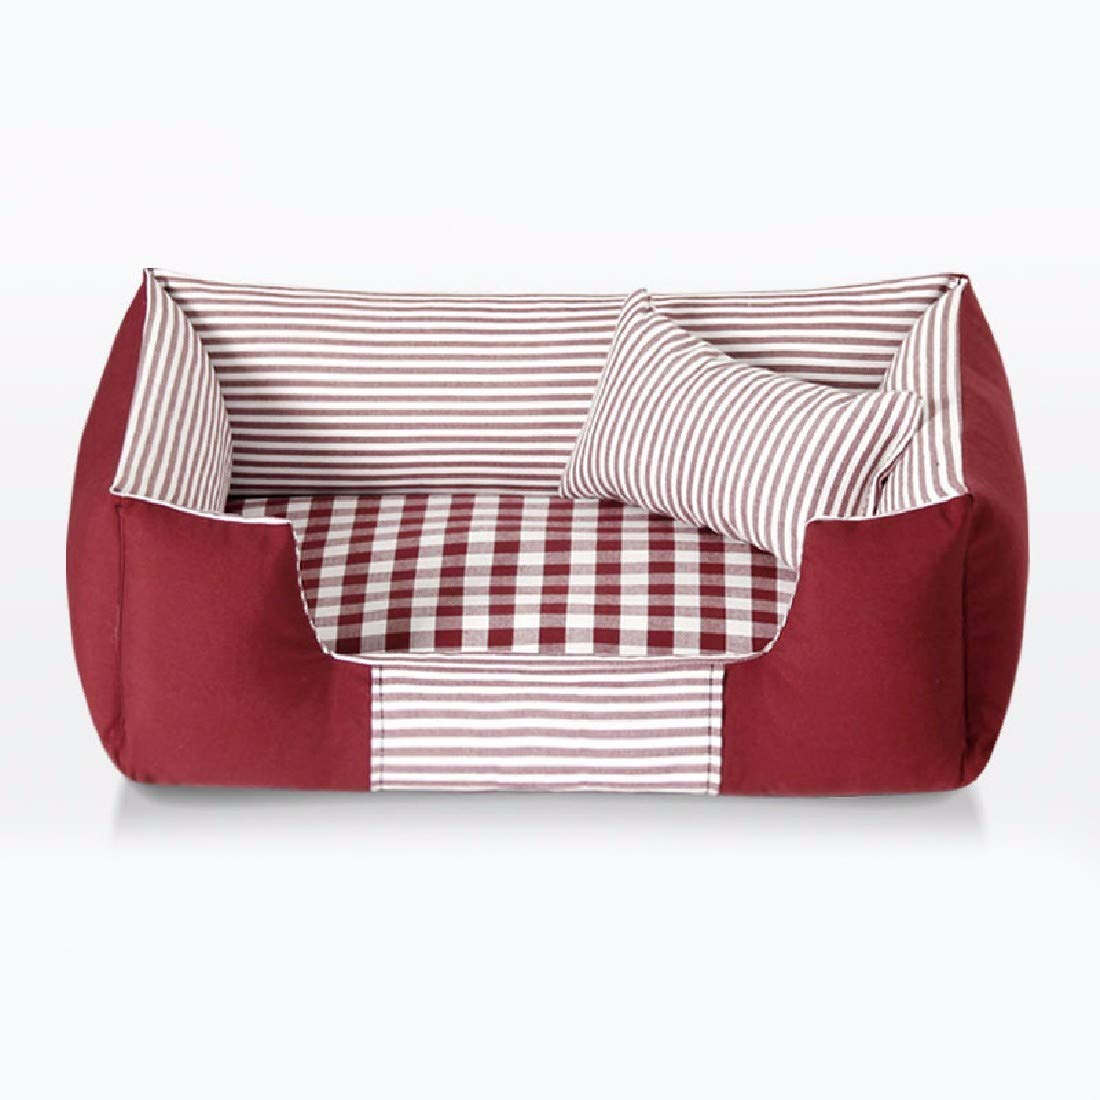 Red 54x44 red 54x44 Gwanna Pet Dog Cat House Bed Four seasons kennel bite dog pet bed,bluee,72x52 Soft Pad for Pets Sleeping (color   Red, Size   54x44)